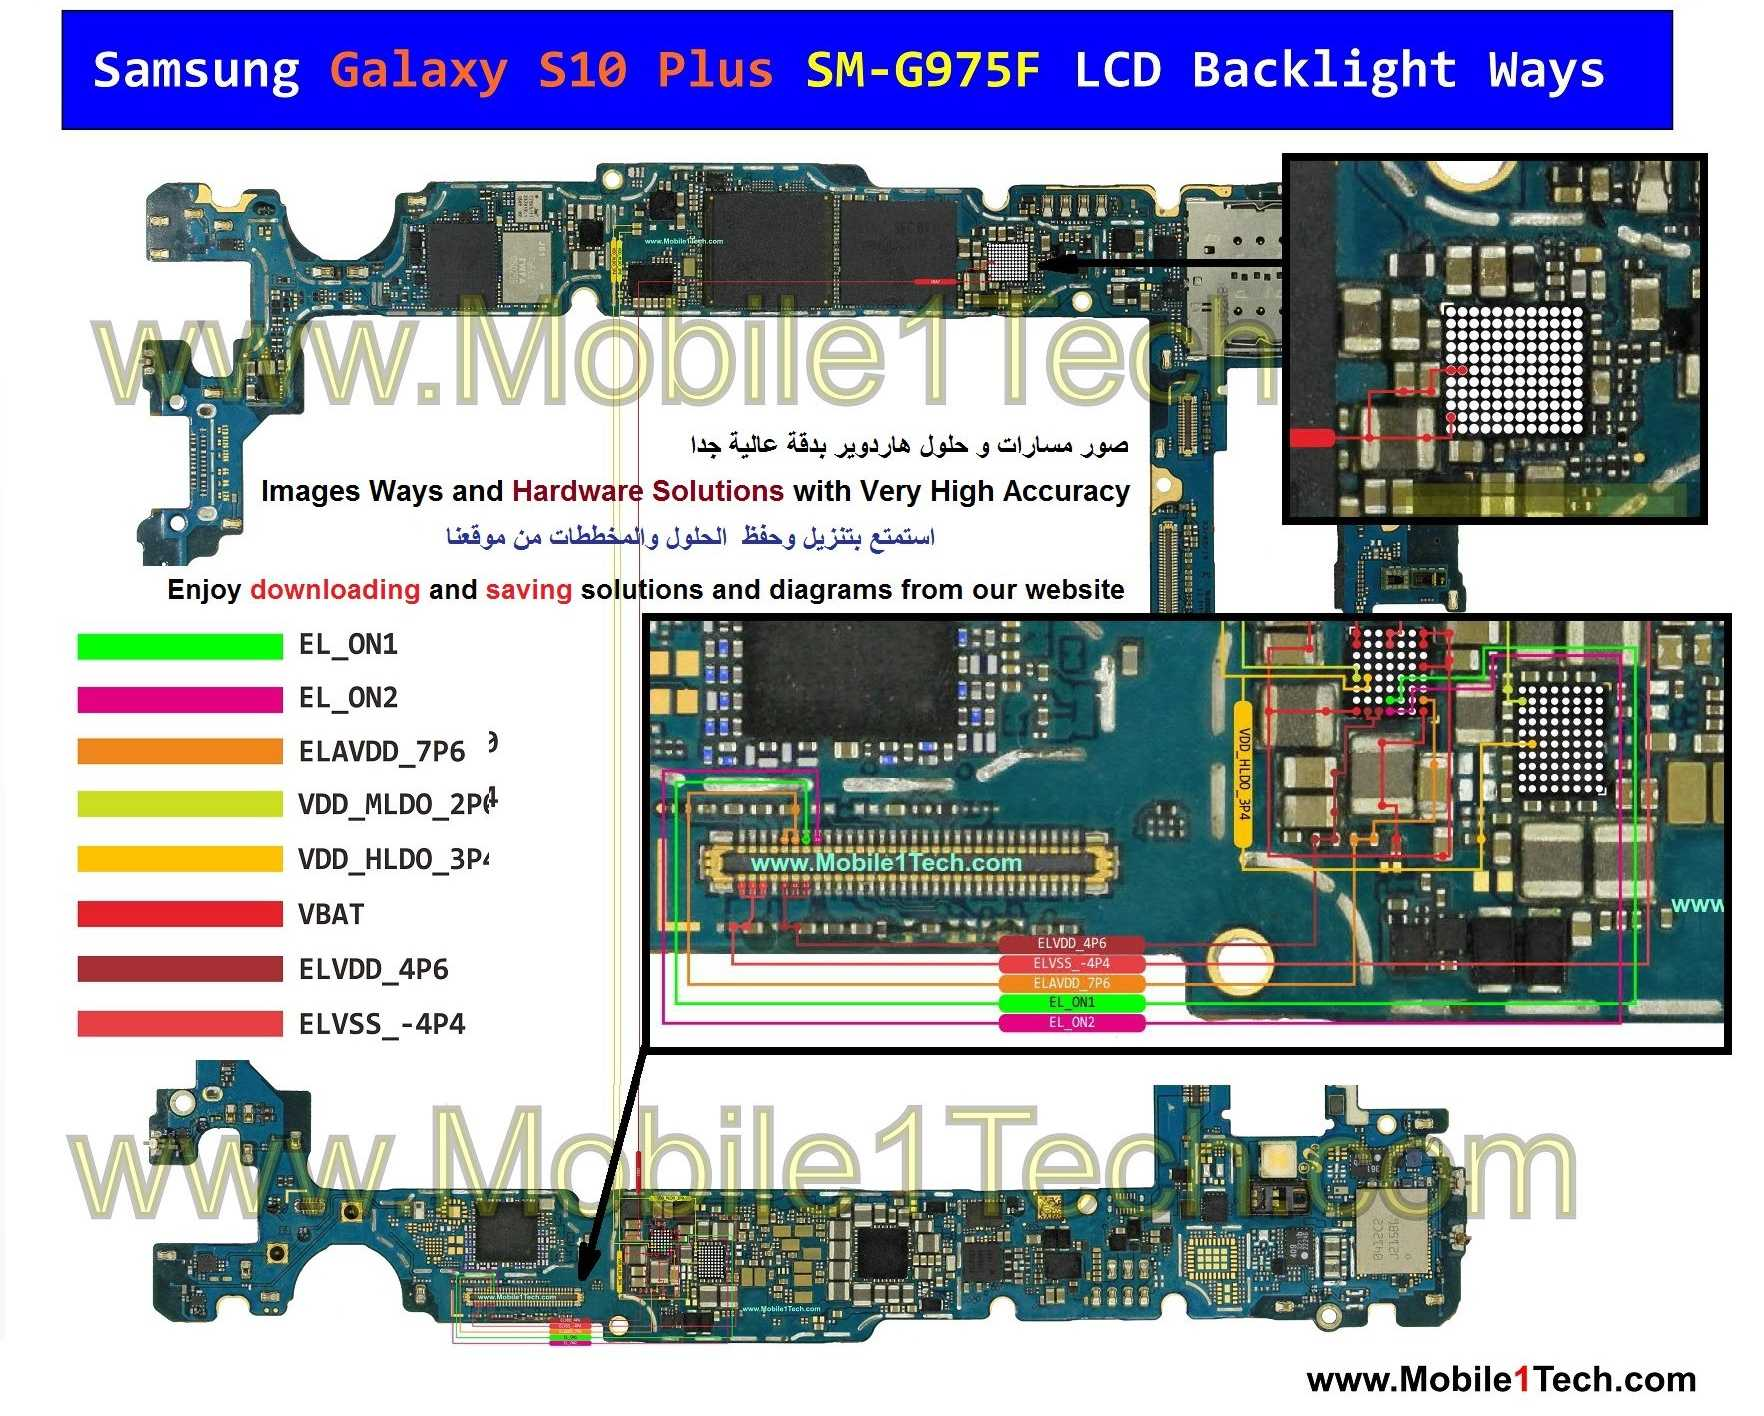 Samsung Galaxy S10 Plus Backlight Ways Repair Display Light Problem